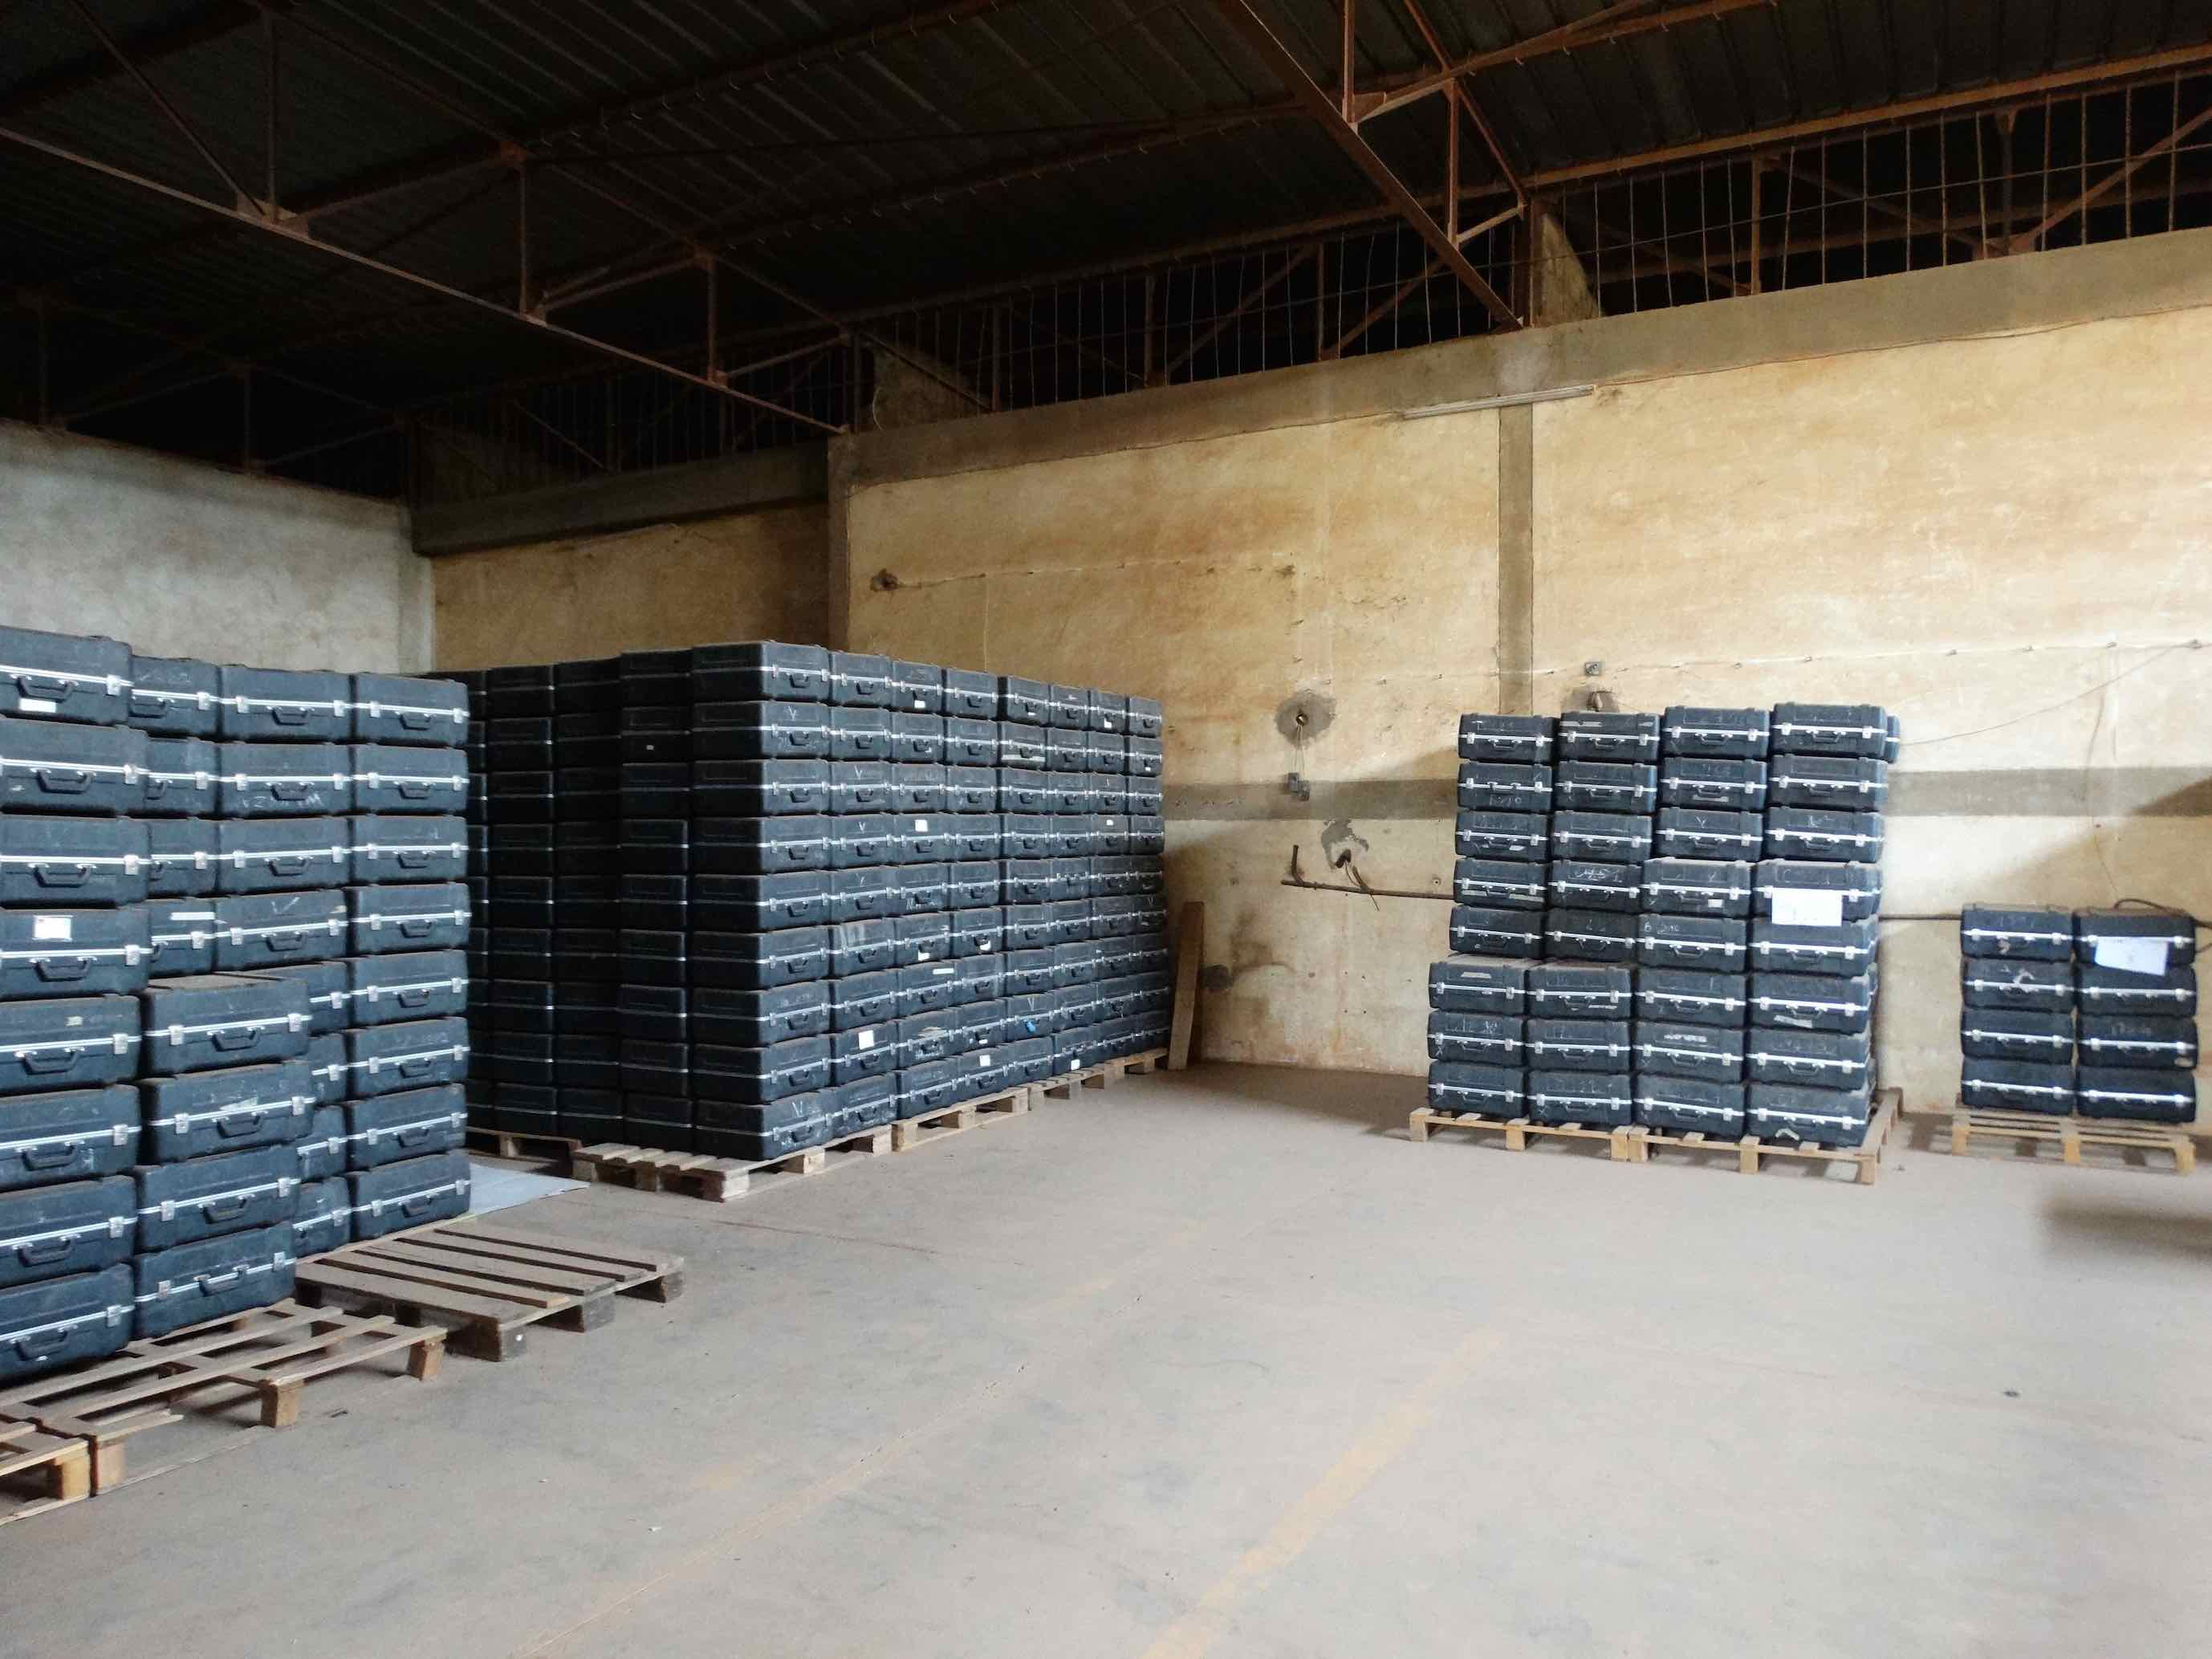 Visit to the INEC's Central Warehouse (PACTE-BF) I Ouagadougou, Burkina Faso I 27 July 2015